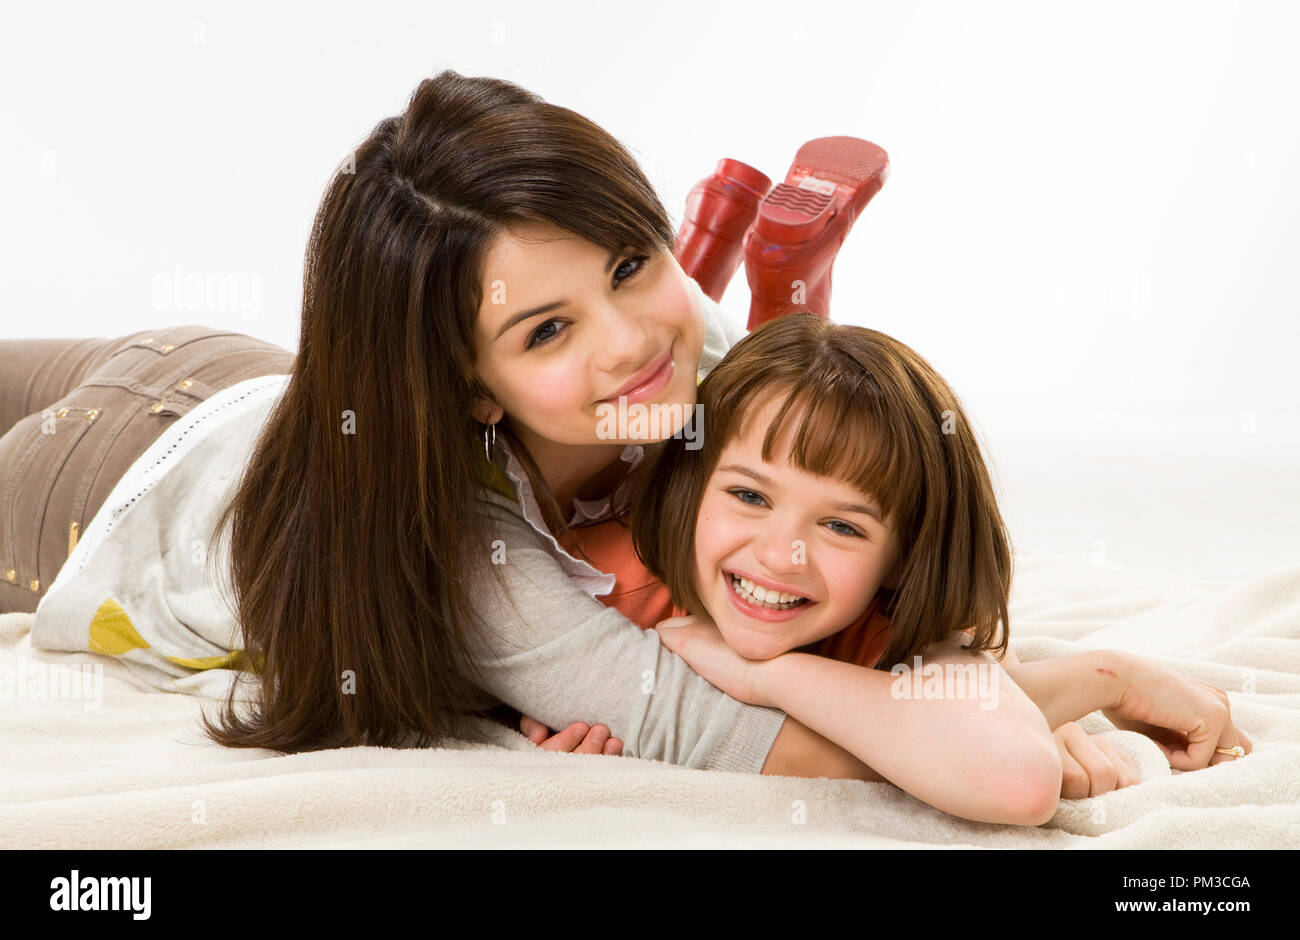 Joey King (right) and Selena Gomez are, respectively, RAMONA AND BEEZUS, a new film based on the beloved books by Beverly Cleary. - Stock Image